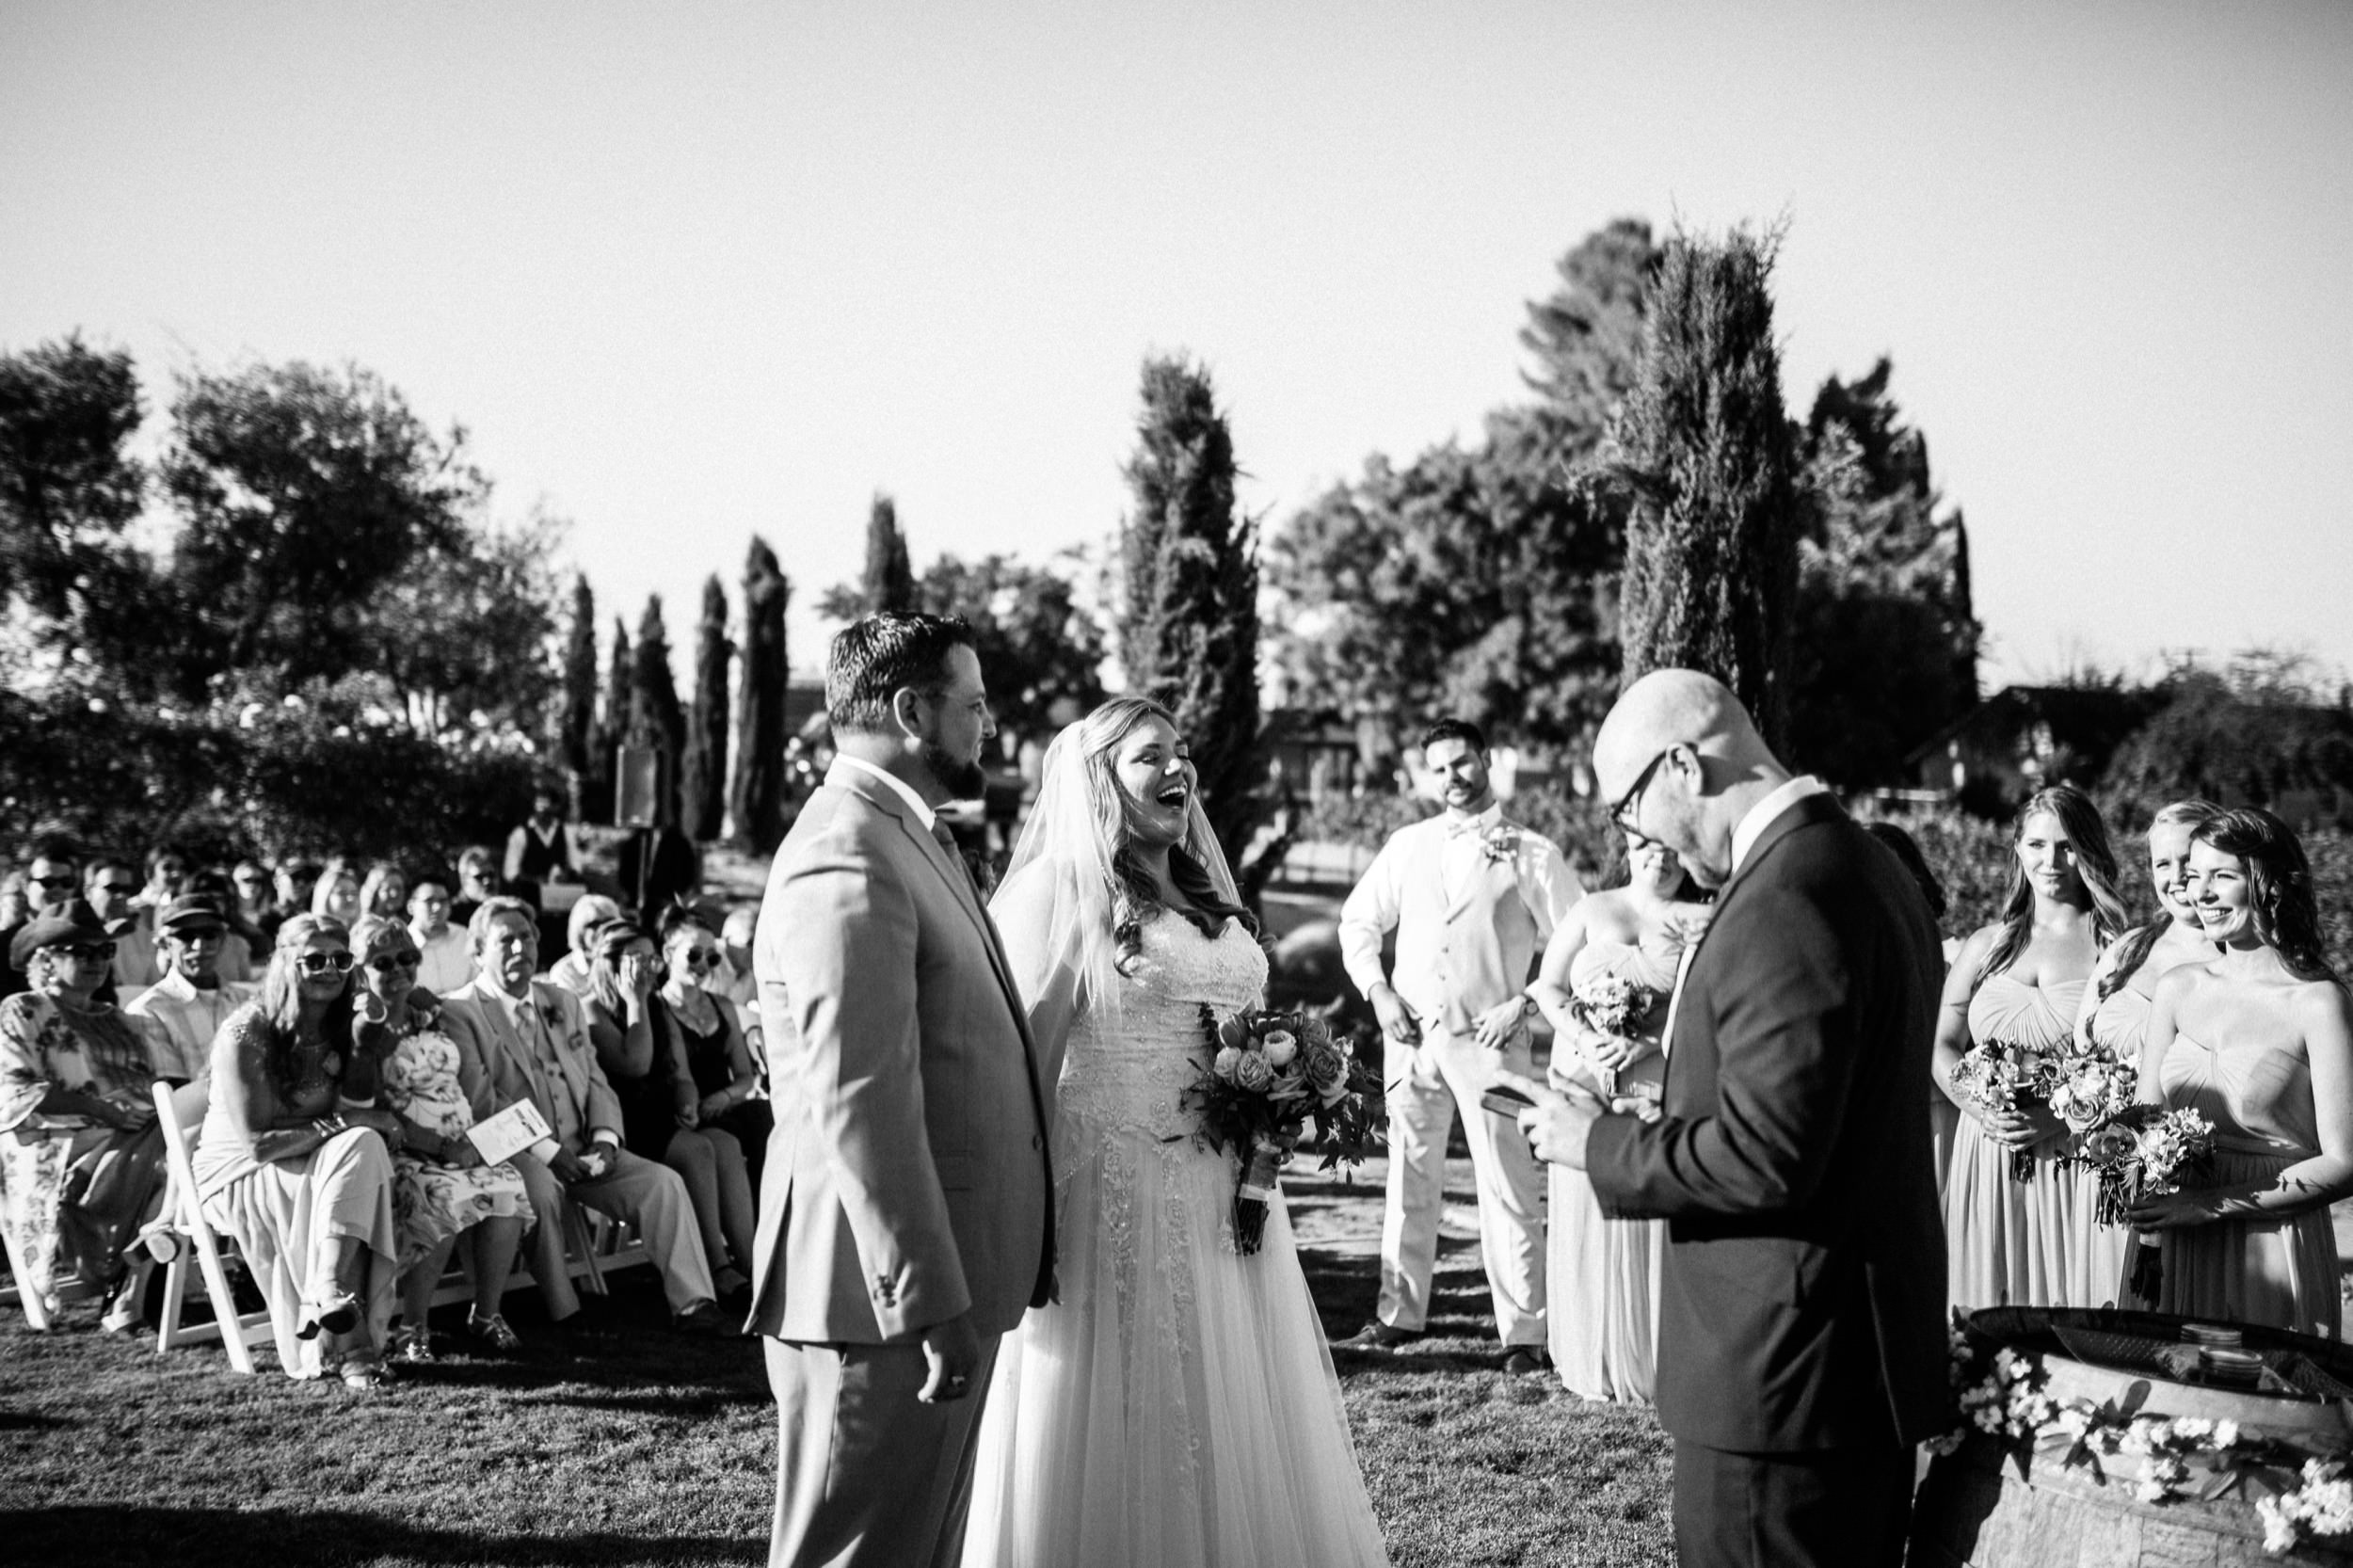 Toca Madera Winery Wedding Photography 88.jpg